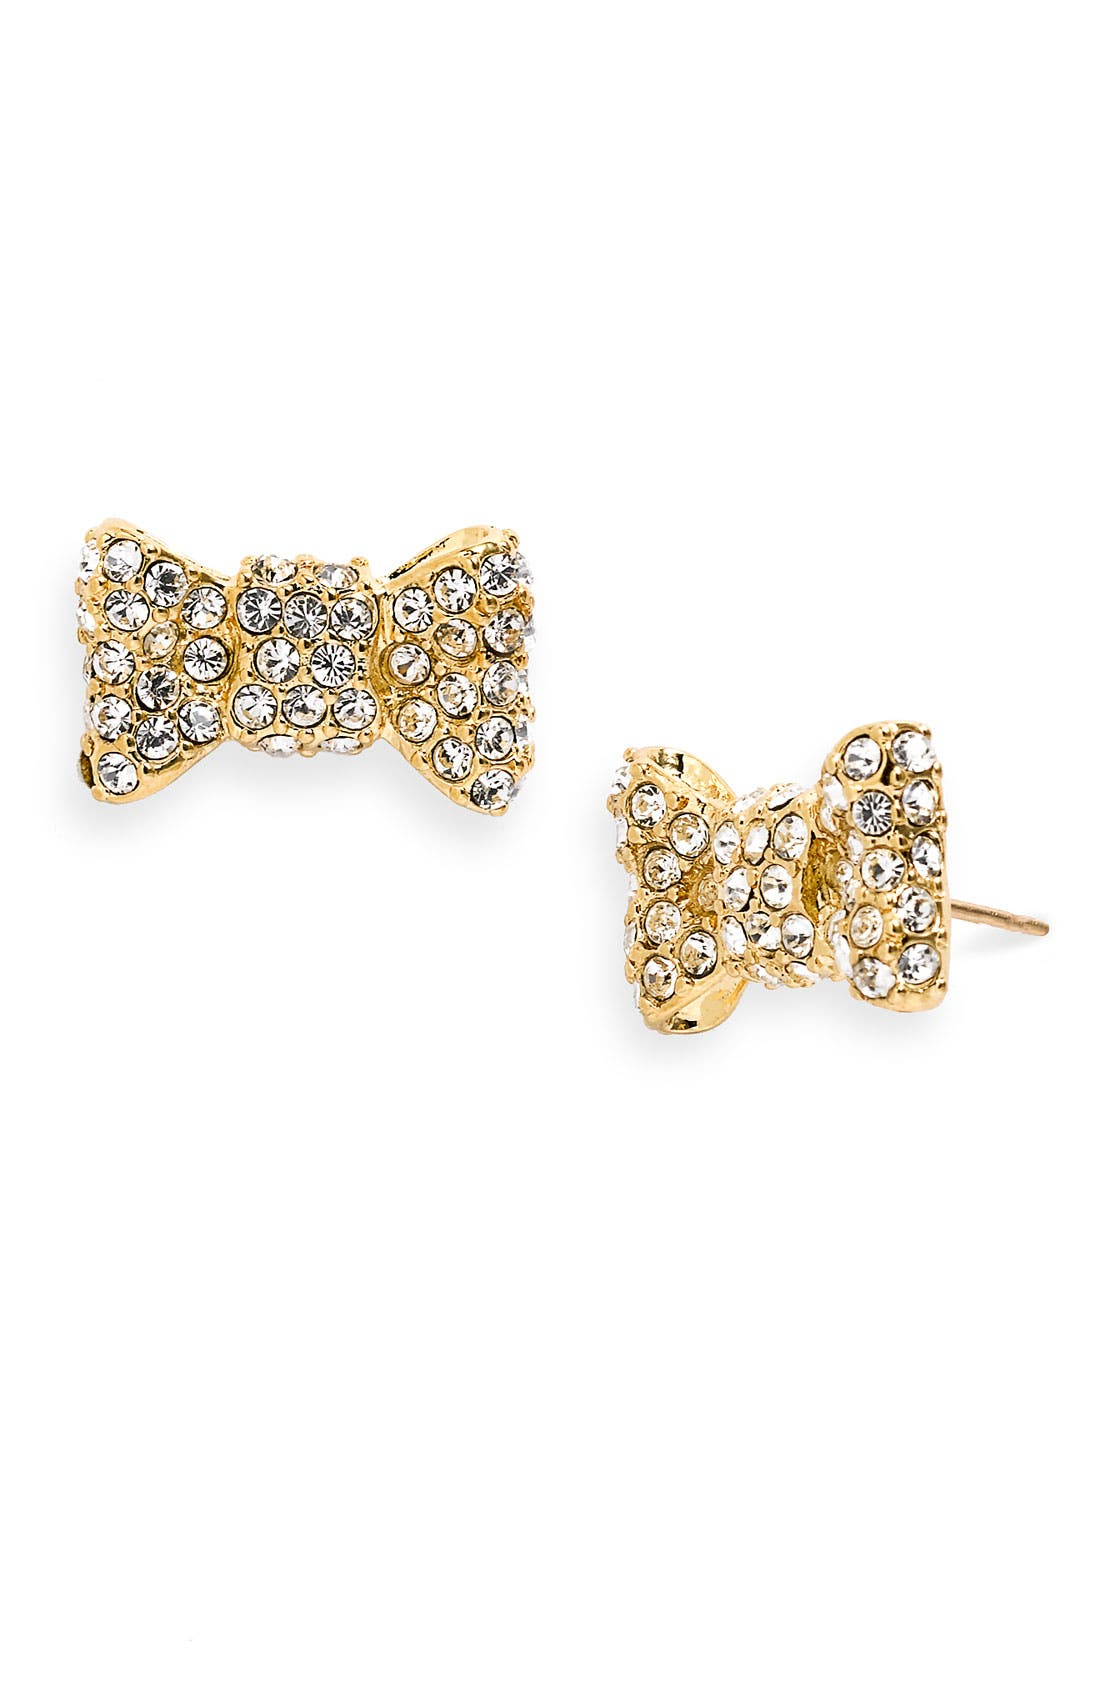 Alternate Image 1 Selected - kate spade new york 'all wrapped up' pavé bow stud earrings